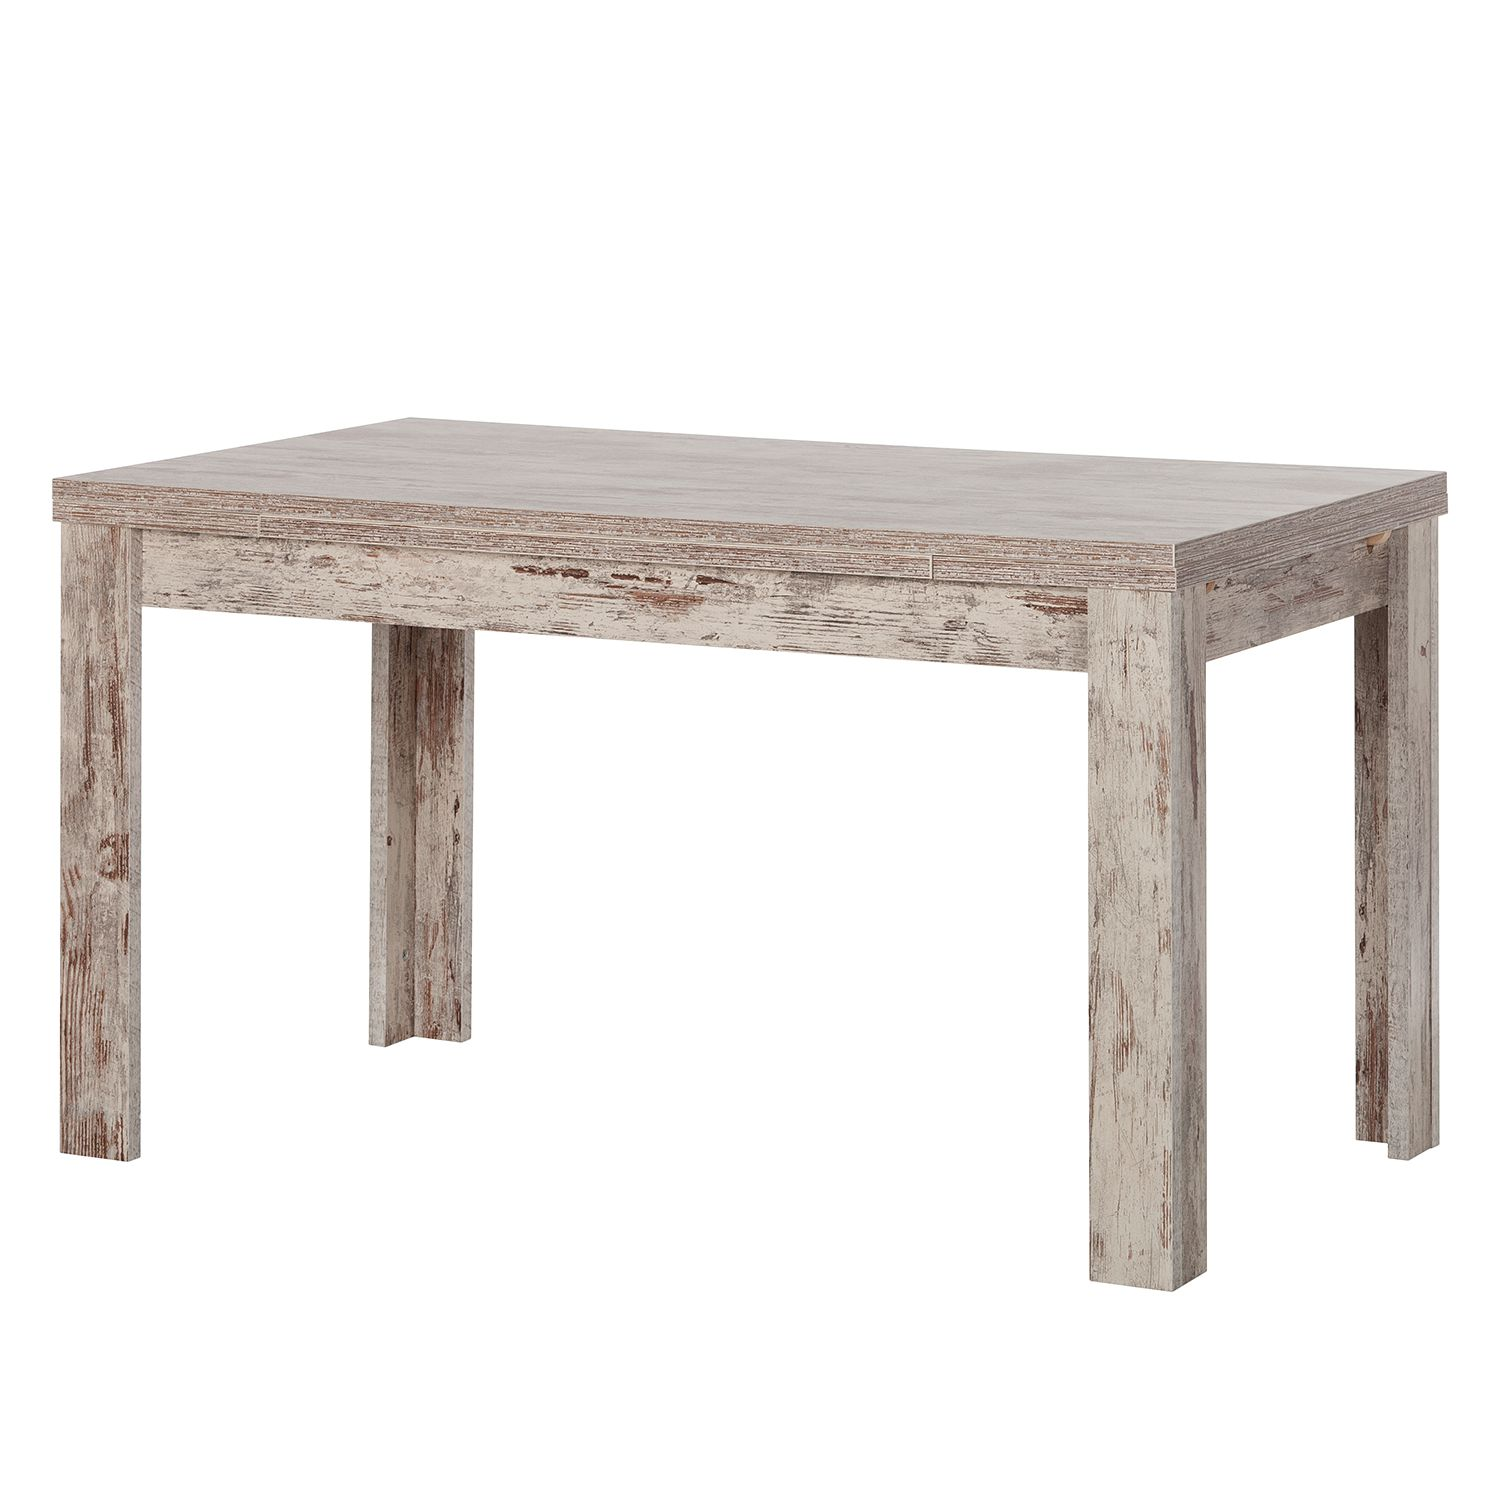 Table à manger Galant (extractible) - Chêne antique - Largeur : 140 cm, mooved